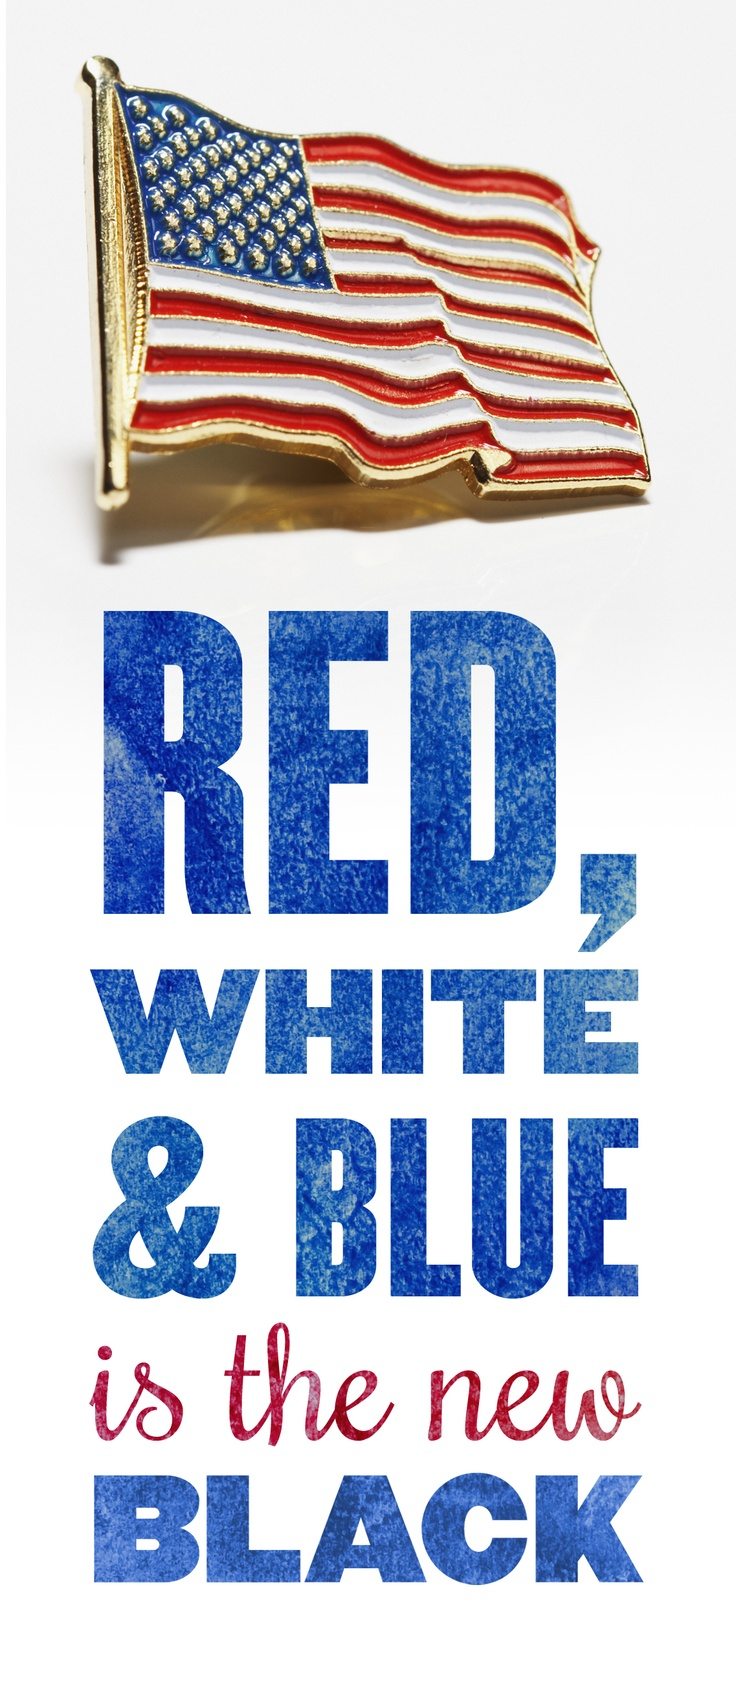 Red, white and blue is the new black.